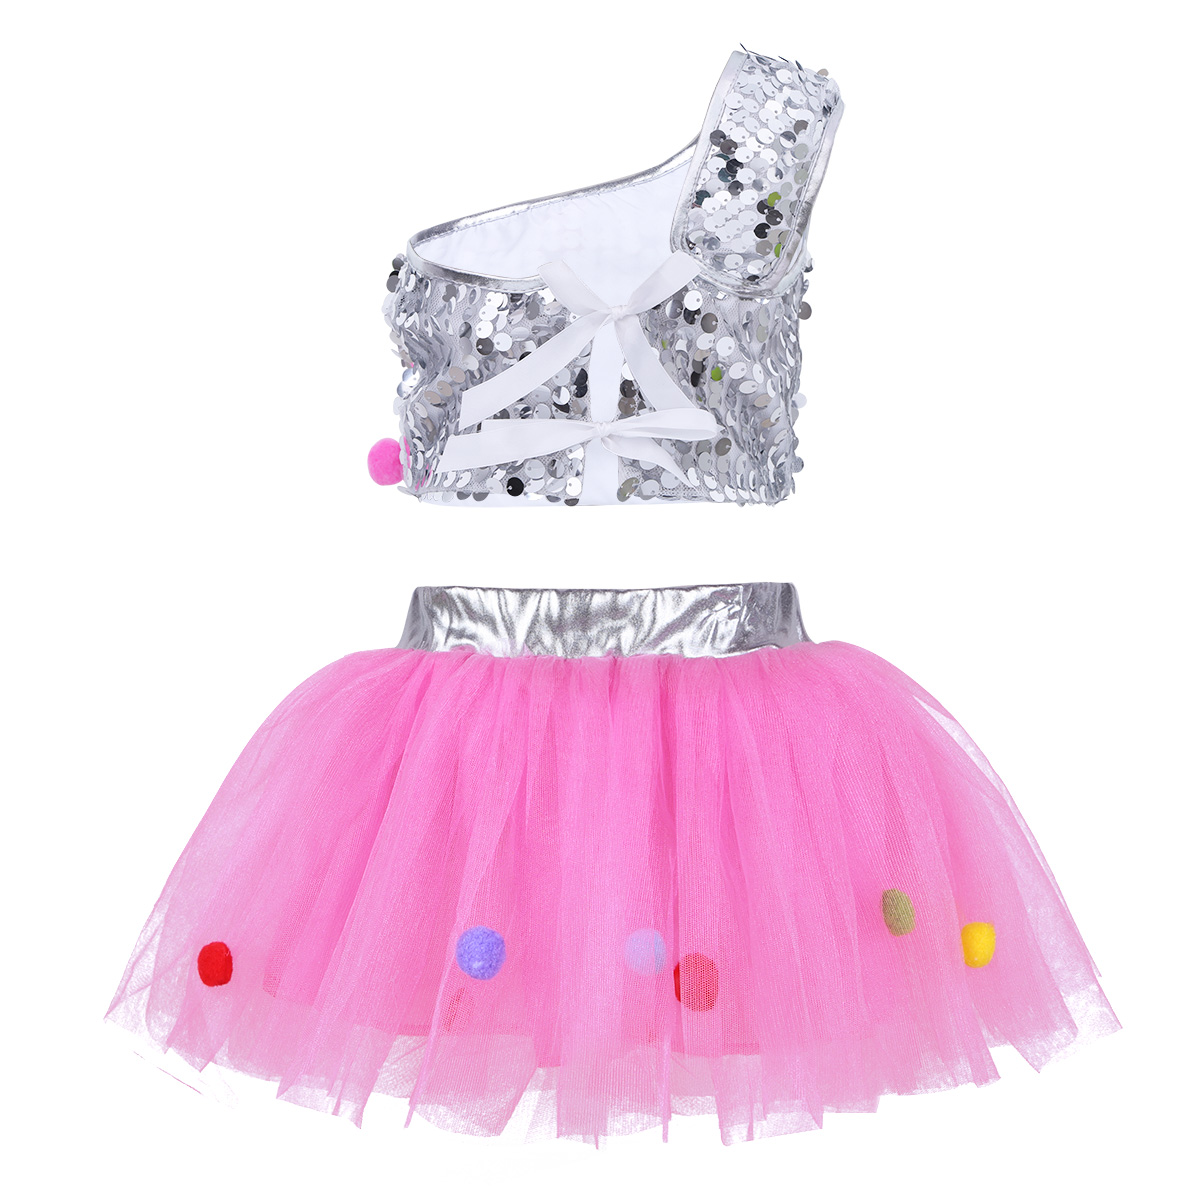 2e3d7b7861ed iEFiEL Children Girls Outfits Sequins Sets Crop Top with Mesh Tutu Skirt  Hair Clip for Jazz Ballet Dancing Stage Performance-in Clothing Sets from  Mother ...